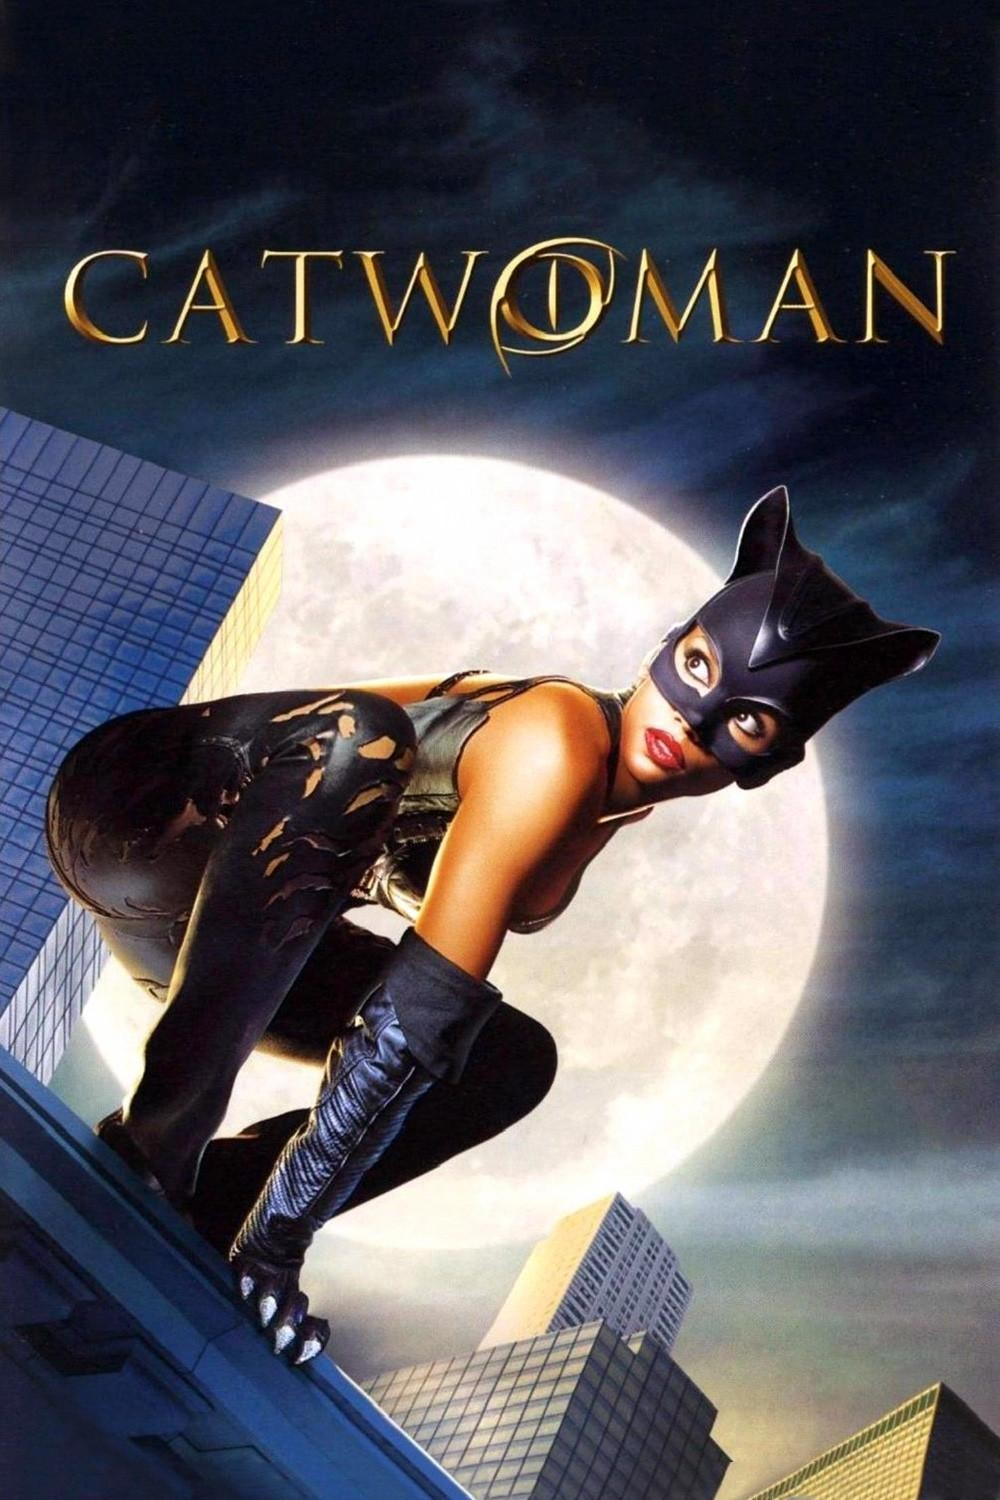 catwoman-film-poster.jpg